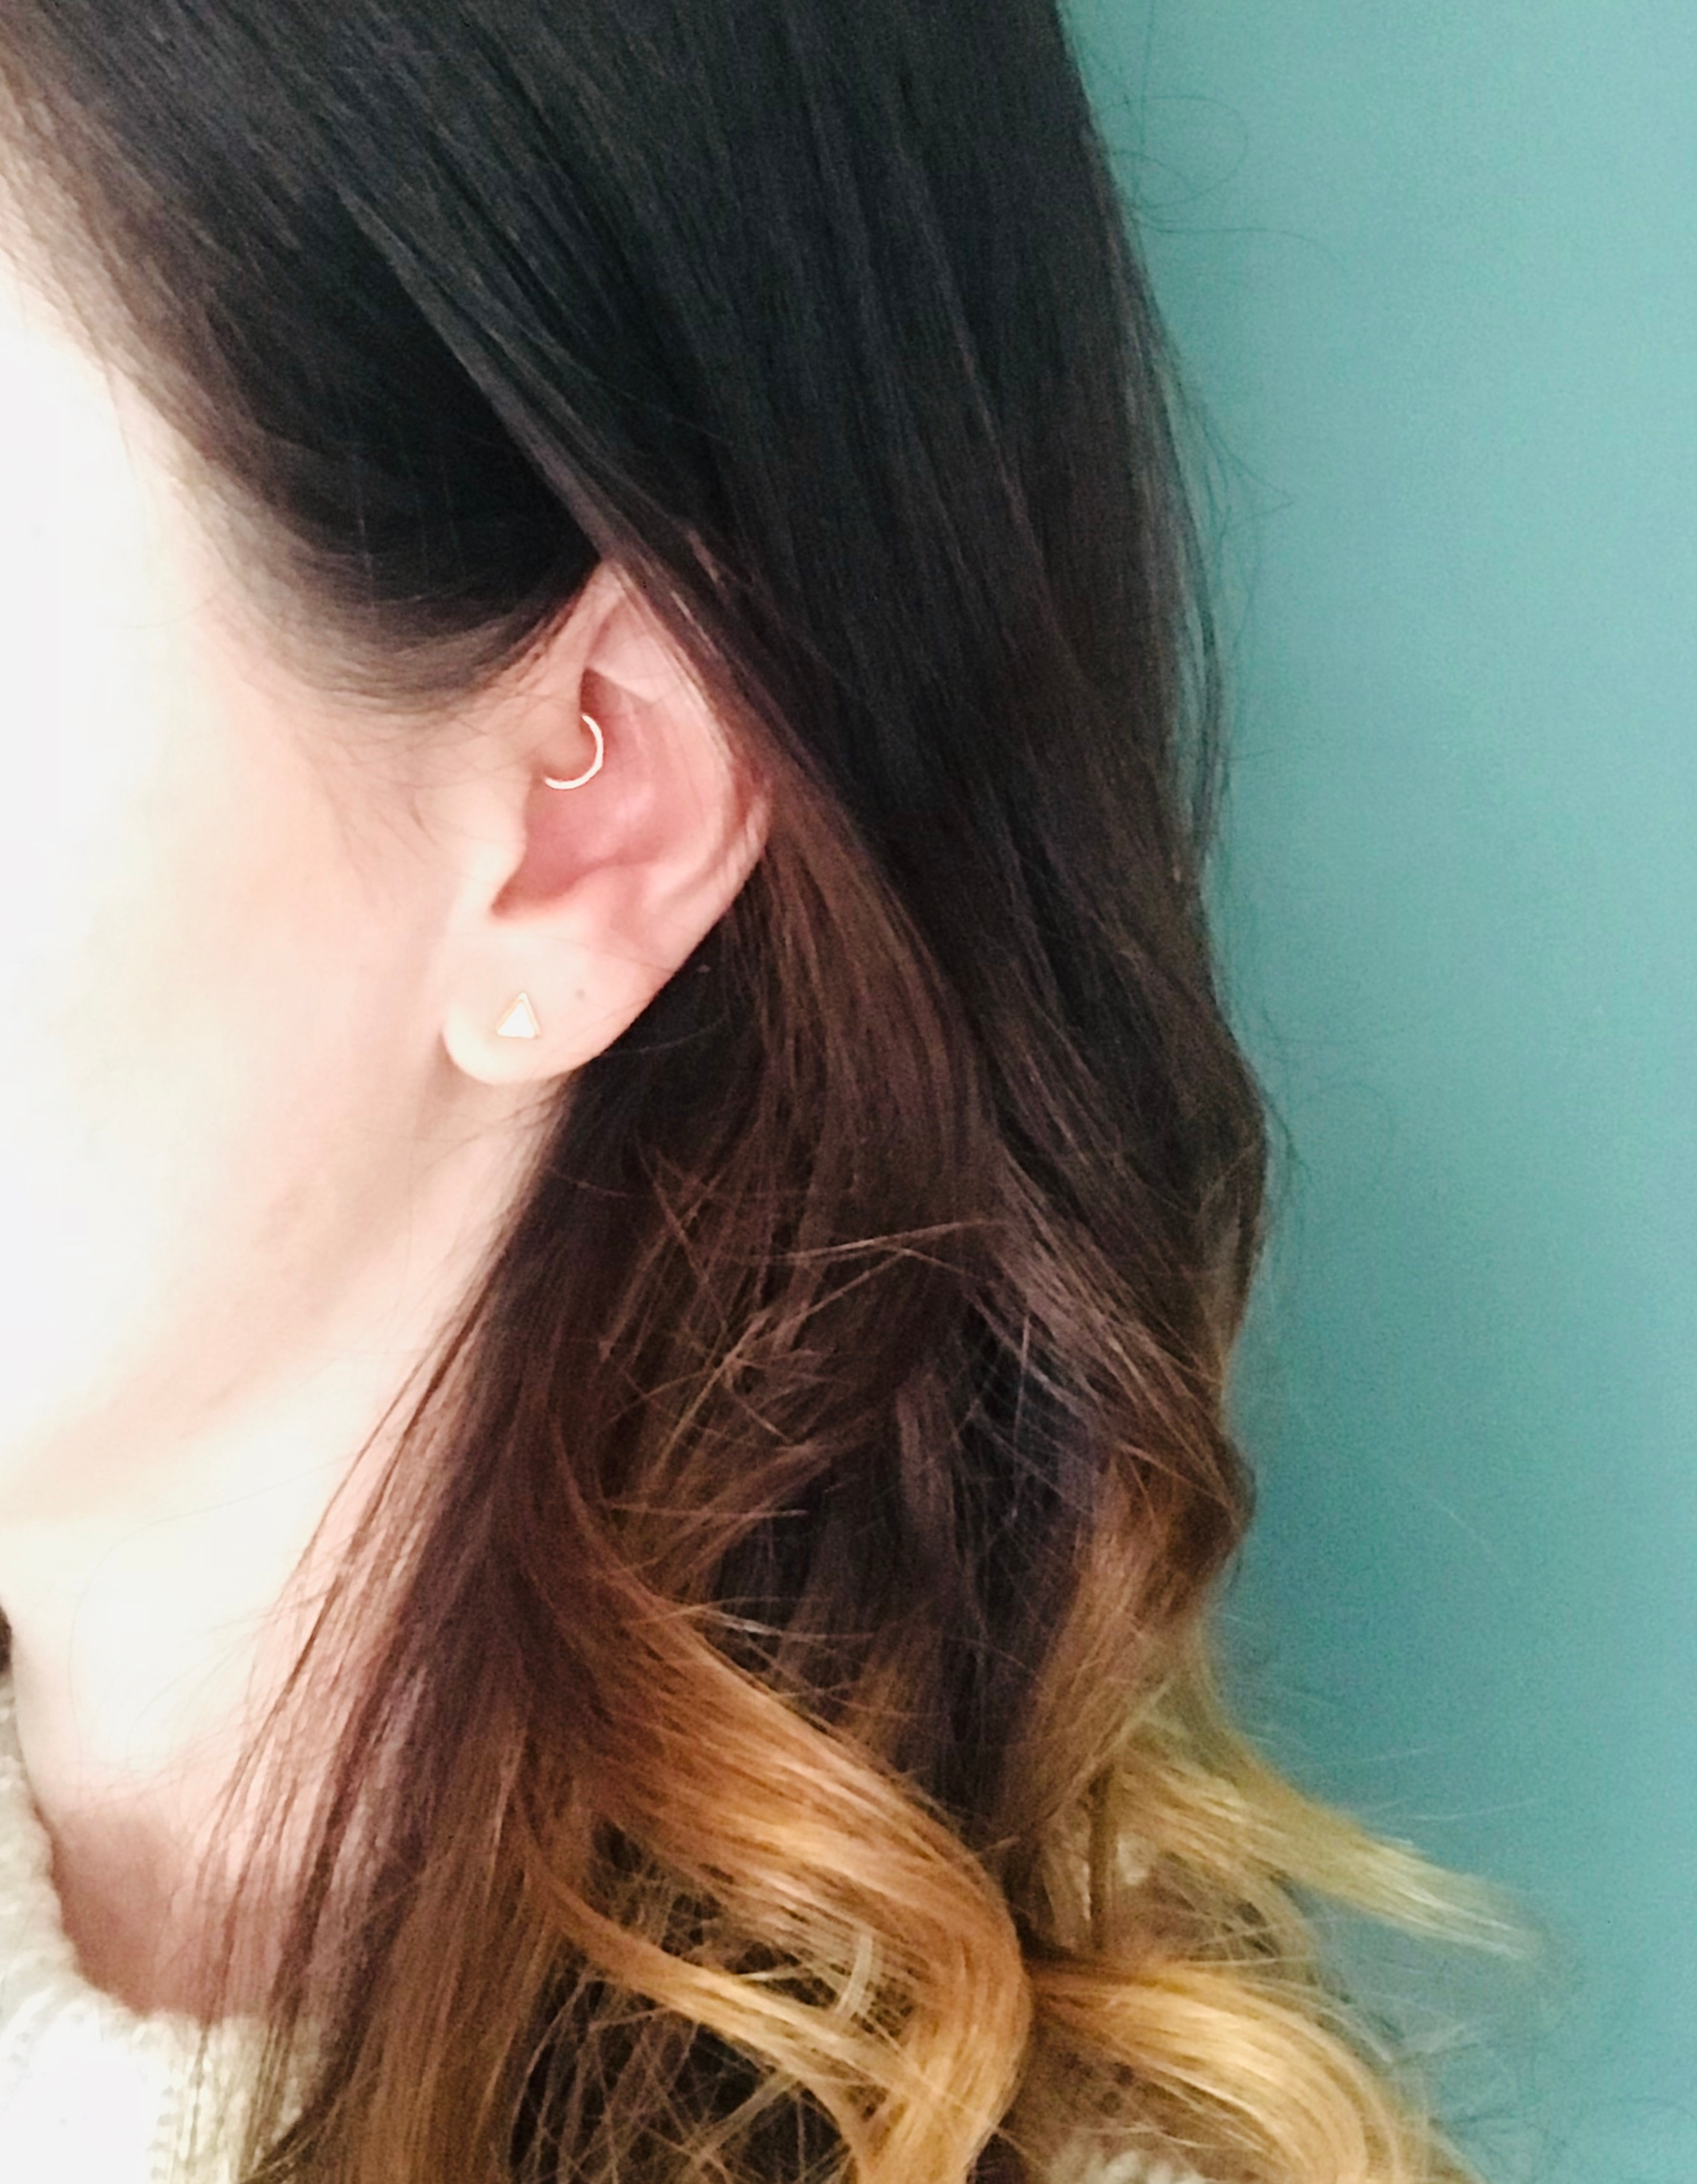 I Had Been Searching For A Quality Gold Cartilage Hoop My Daith Piercing So Long And This One Is Completely Perfect Love It